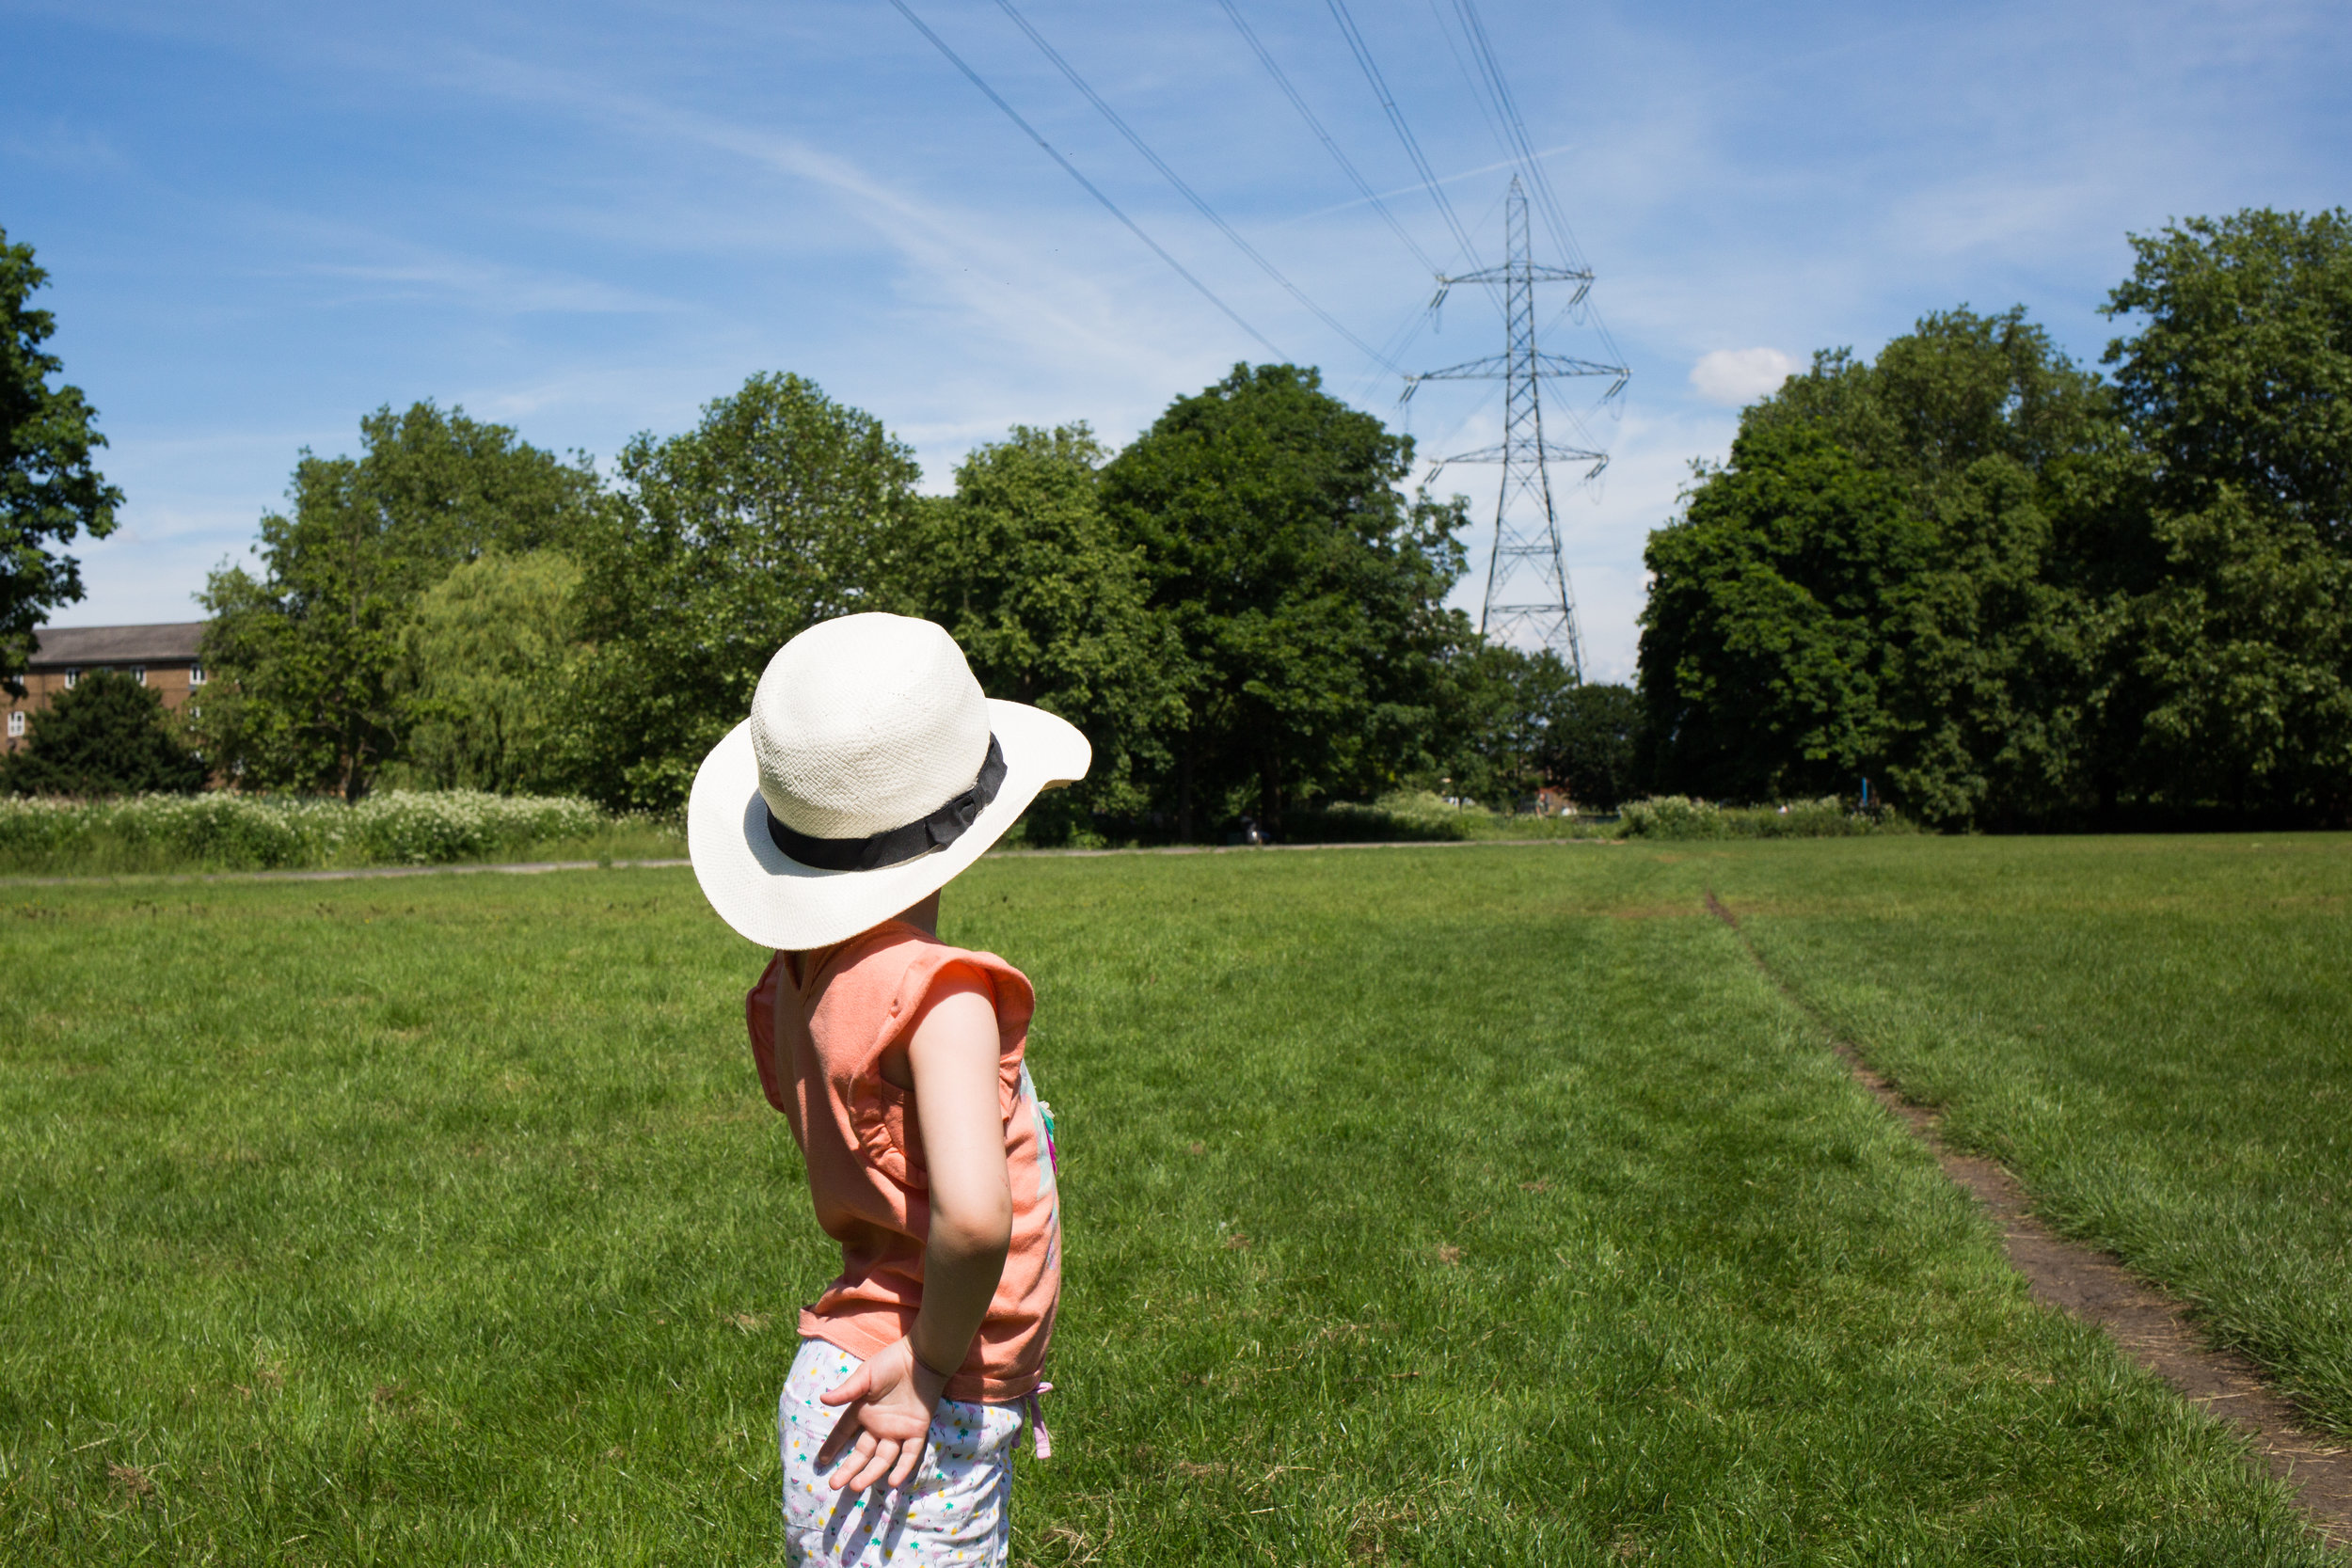 Pylon at Colliers Wood, Canon 5d Mark III, 35mm, F10, 1/1600